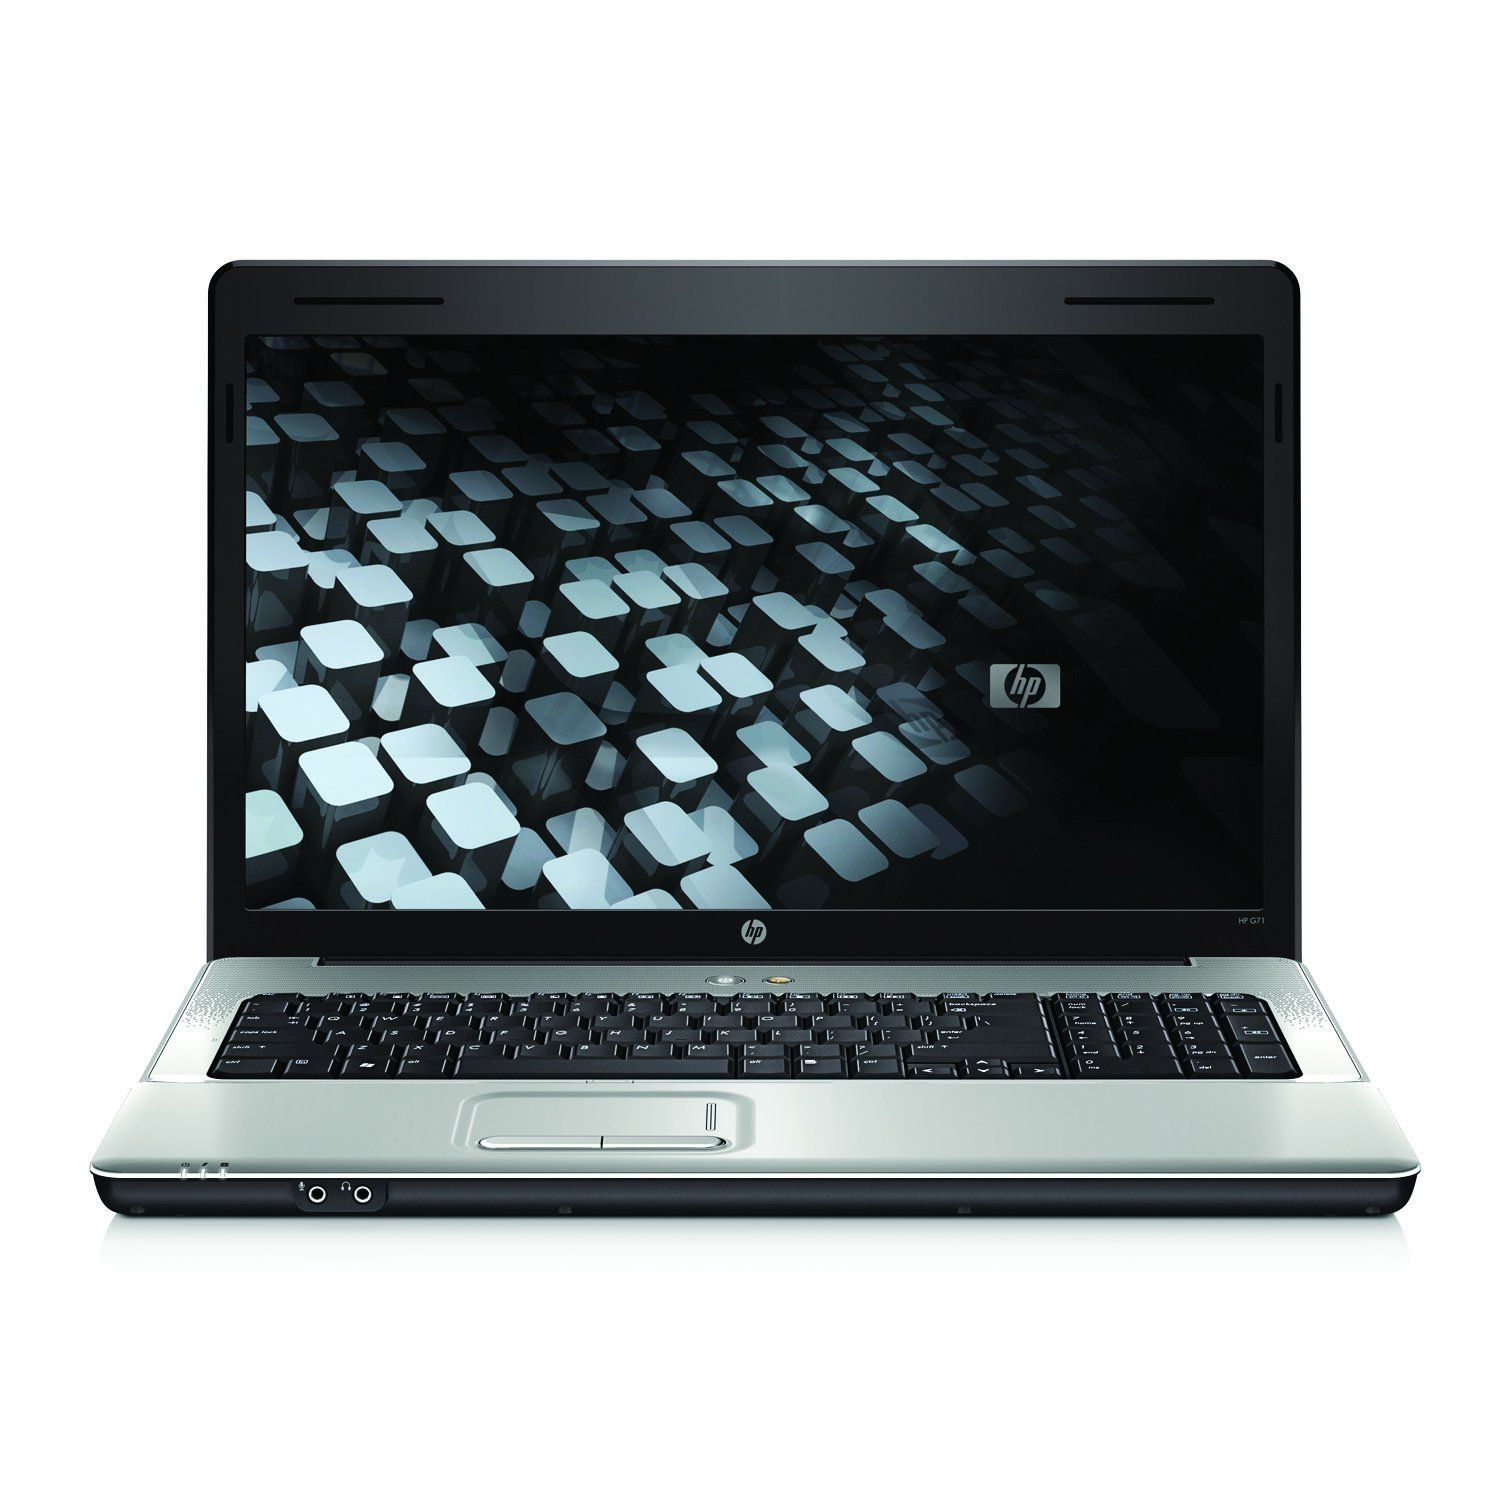 hp g71 manual browse manual guides u2022 rh trufflefries co HP Laptop G62 Specifications HP G62 Notebook PC